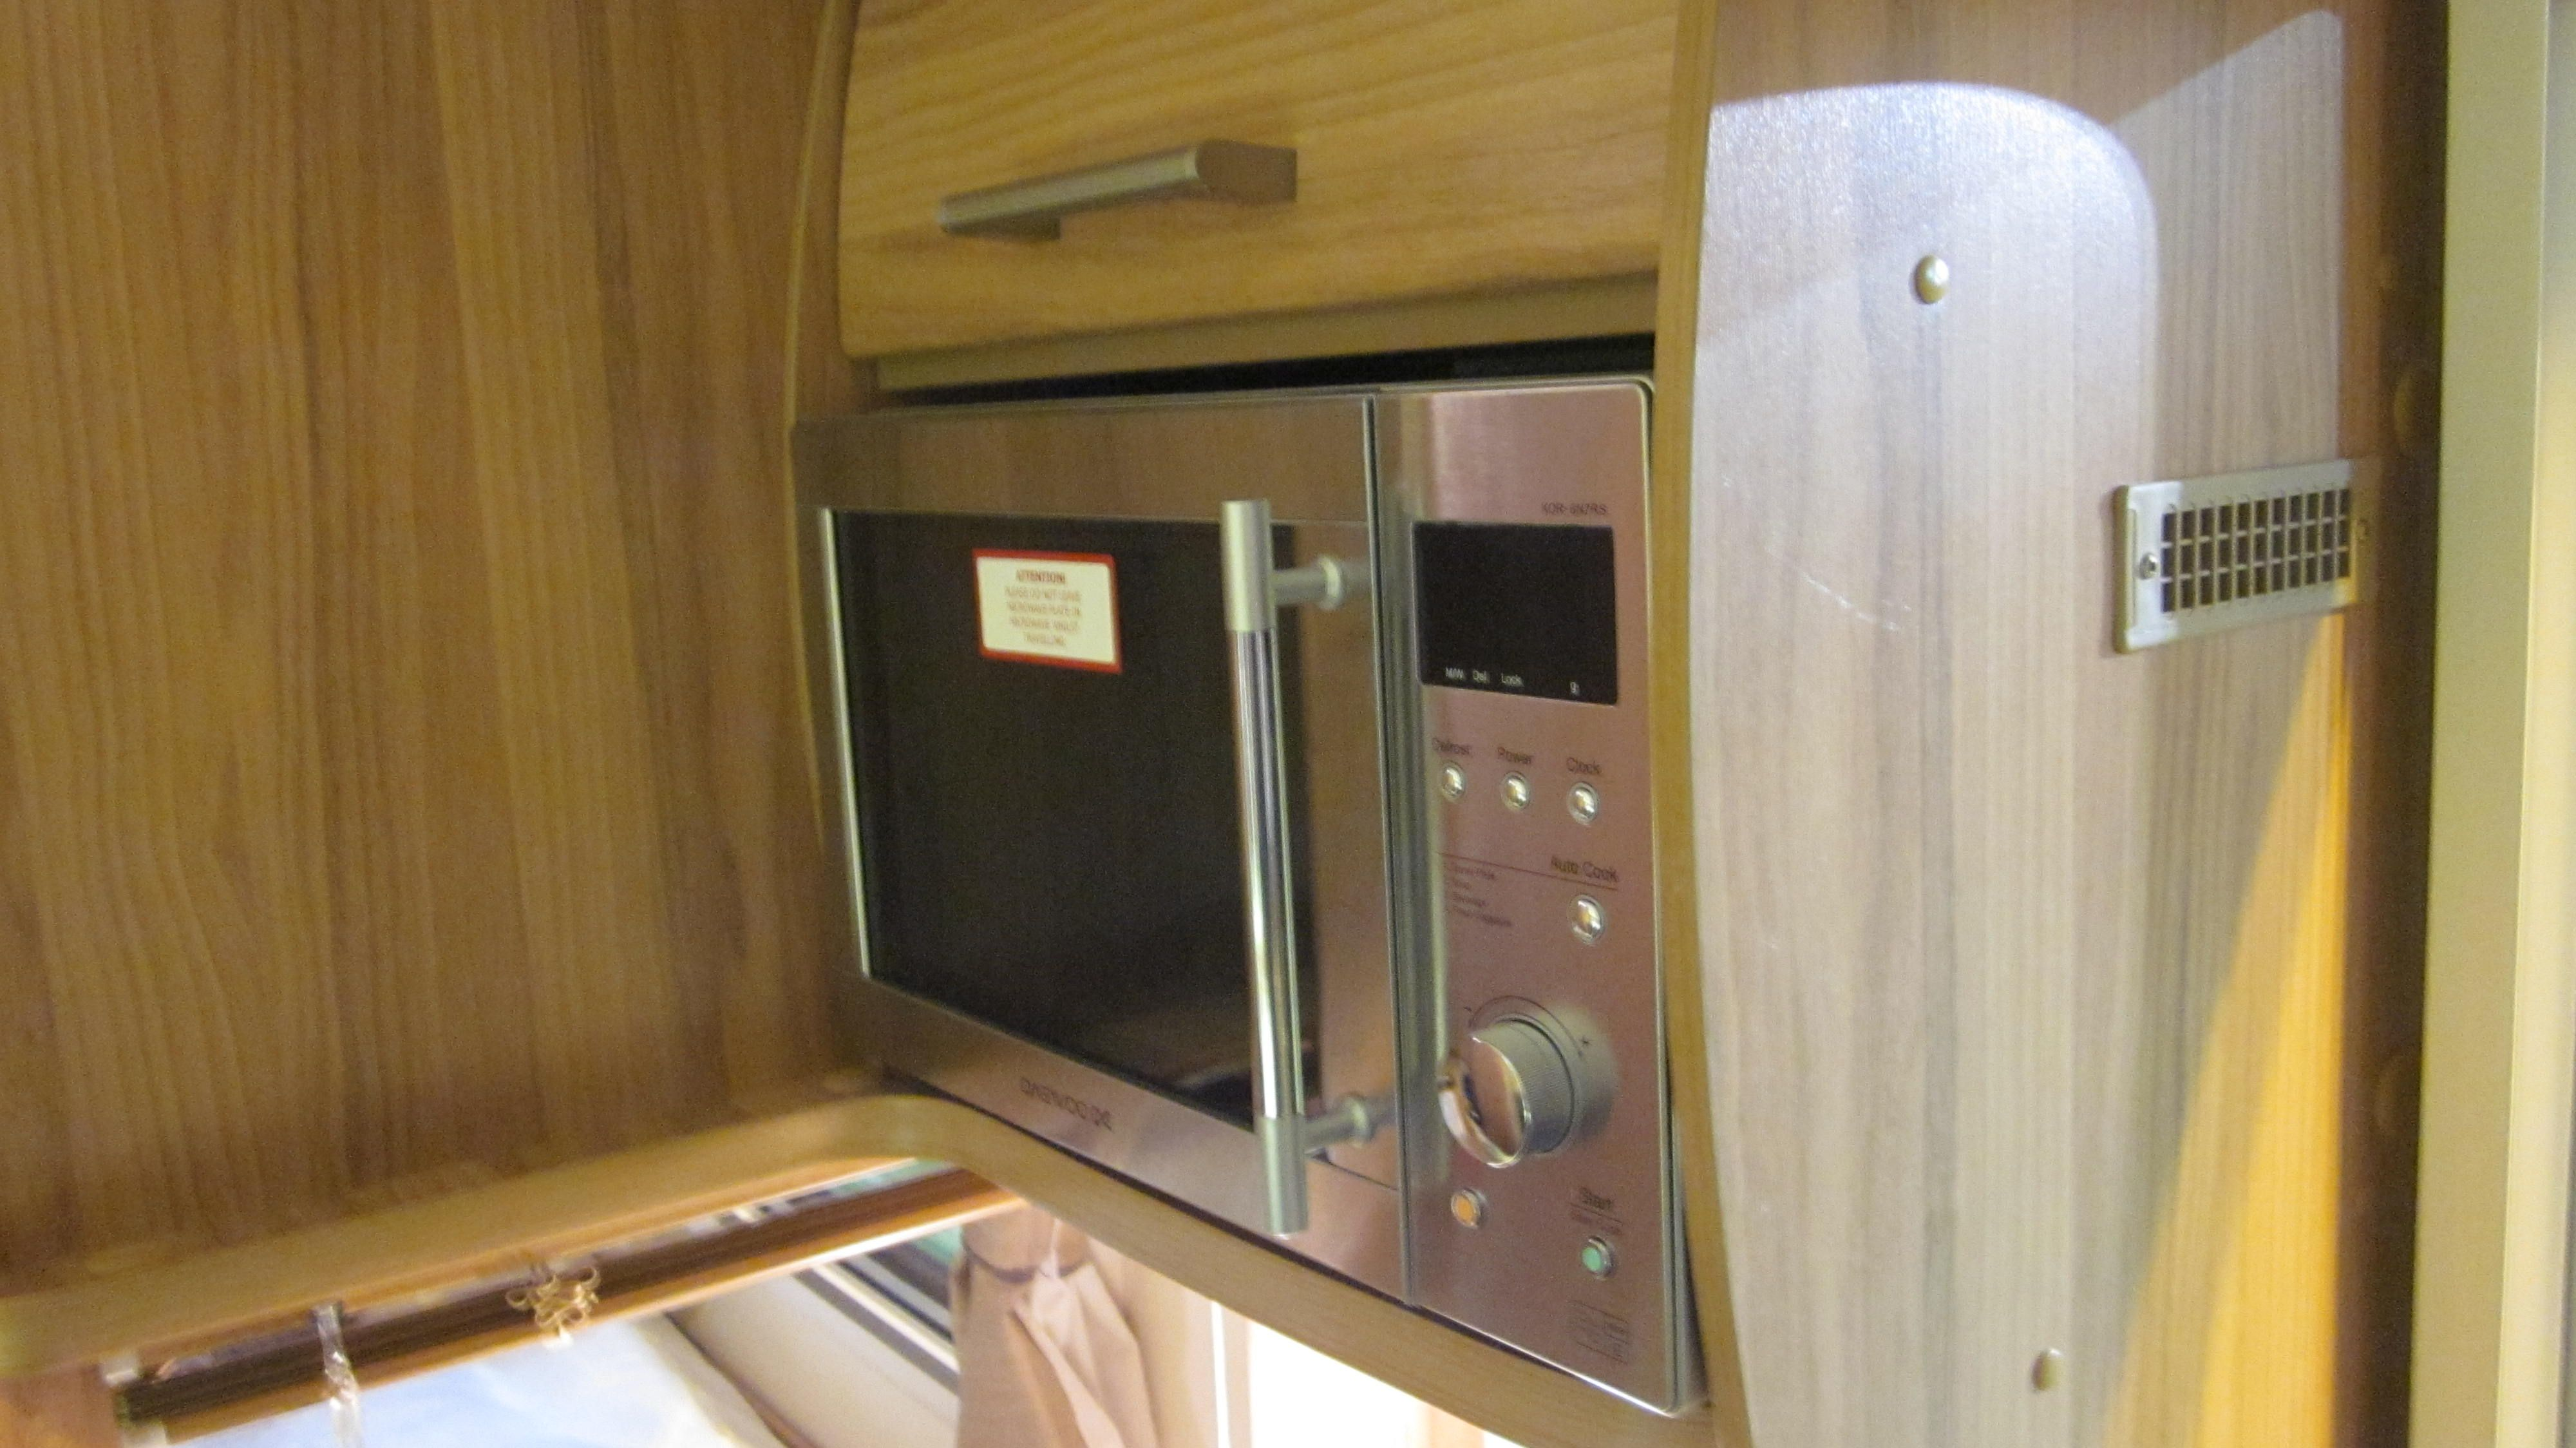 Bailey Pegasus GT65 Verona The Microwave Is Mounted On Right As You Enter